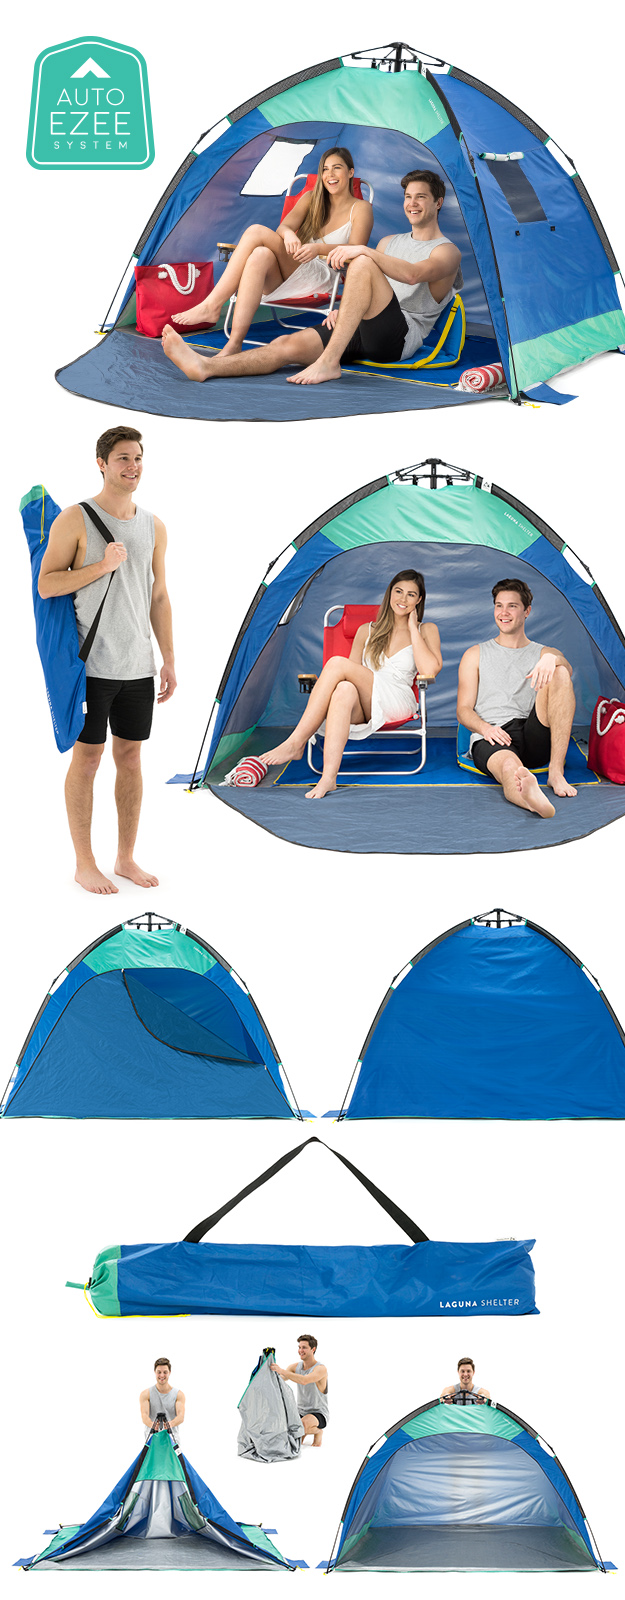 SlumberTrek Auto Ezee Laguna Sun Shelter images showing use, setup and carry bag